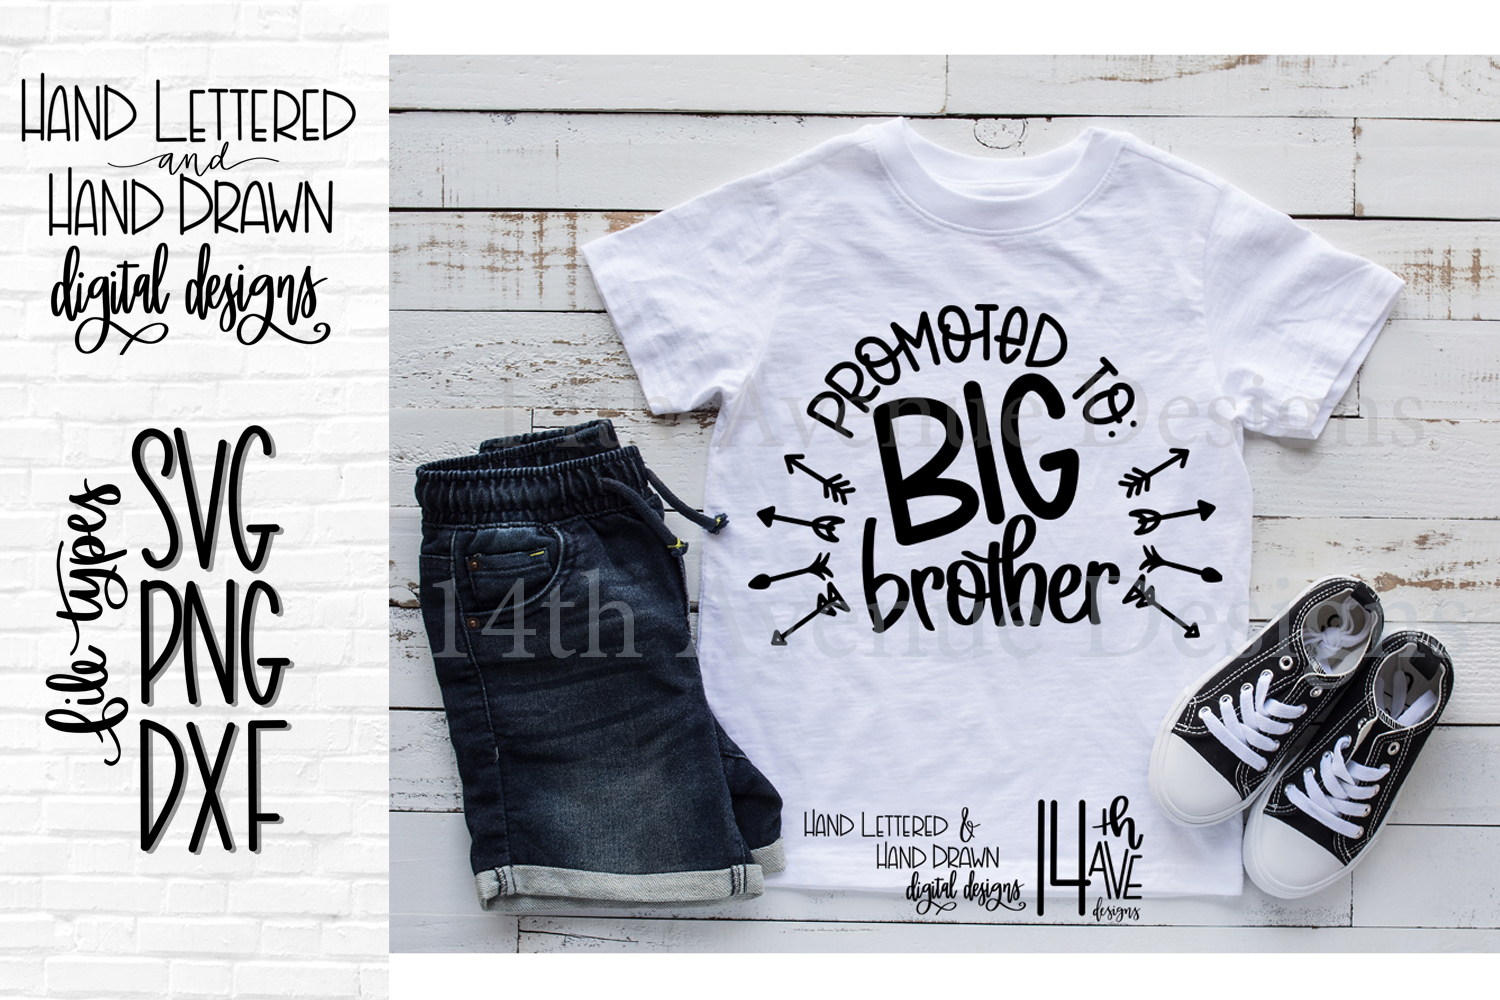 Promoted To Big Brother SVG, Hand Lettered, Big Brother, P example image 1